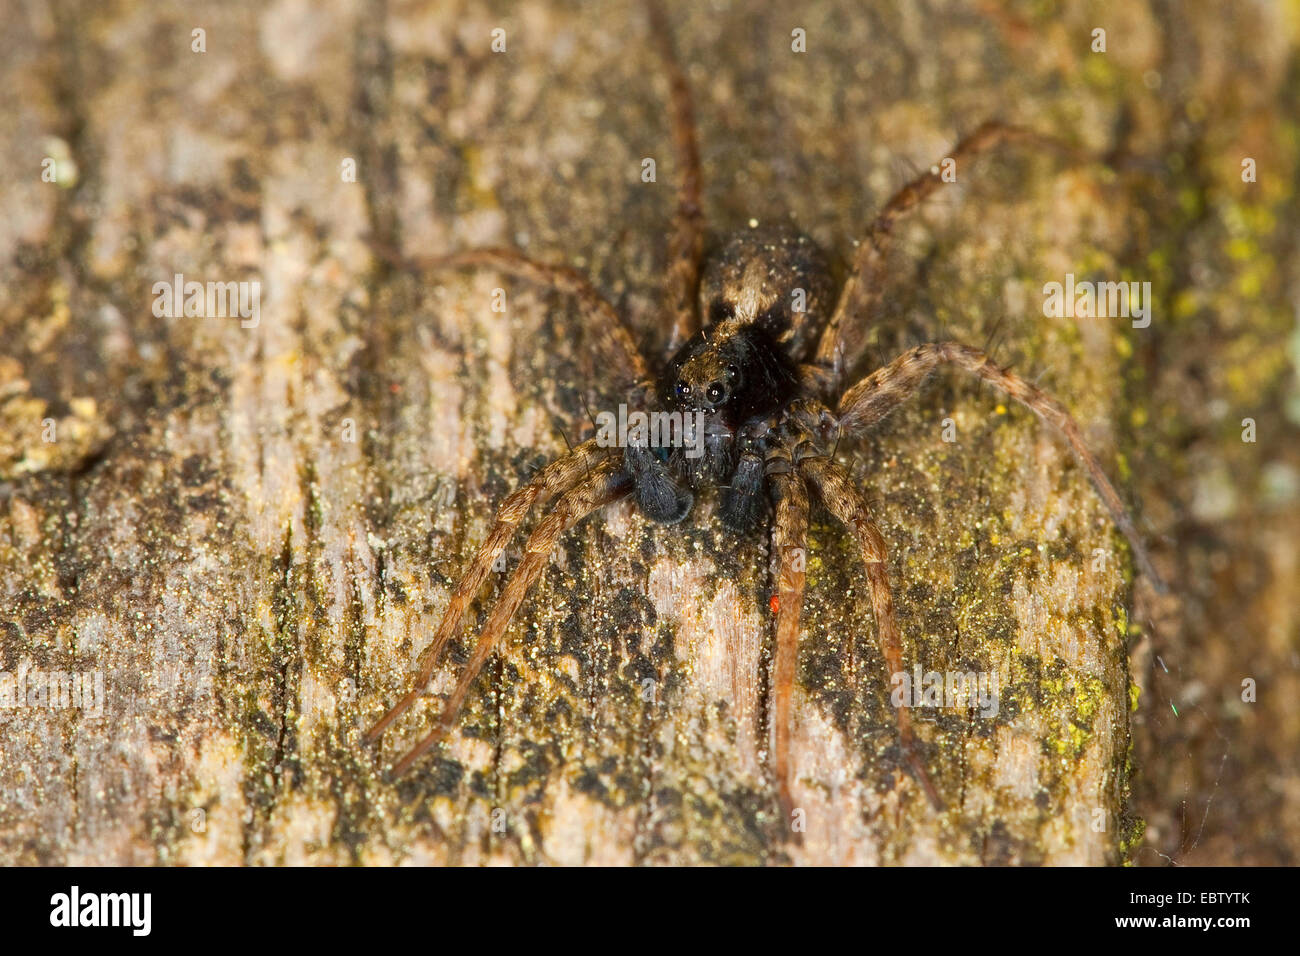 Spotted wolf spider, Ground spider (Pardosa amentata), male, Germany - Stock Image